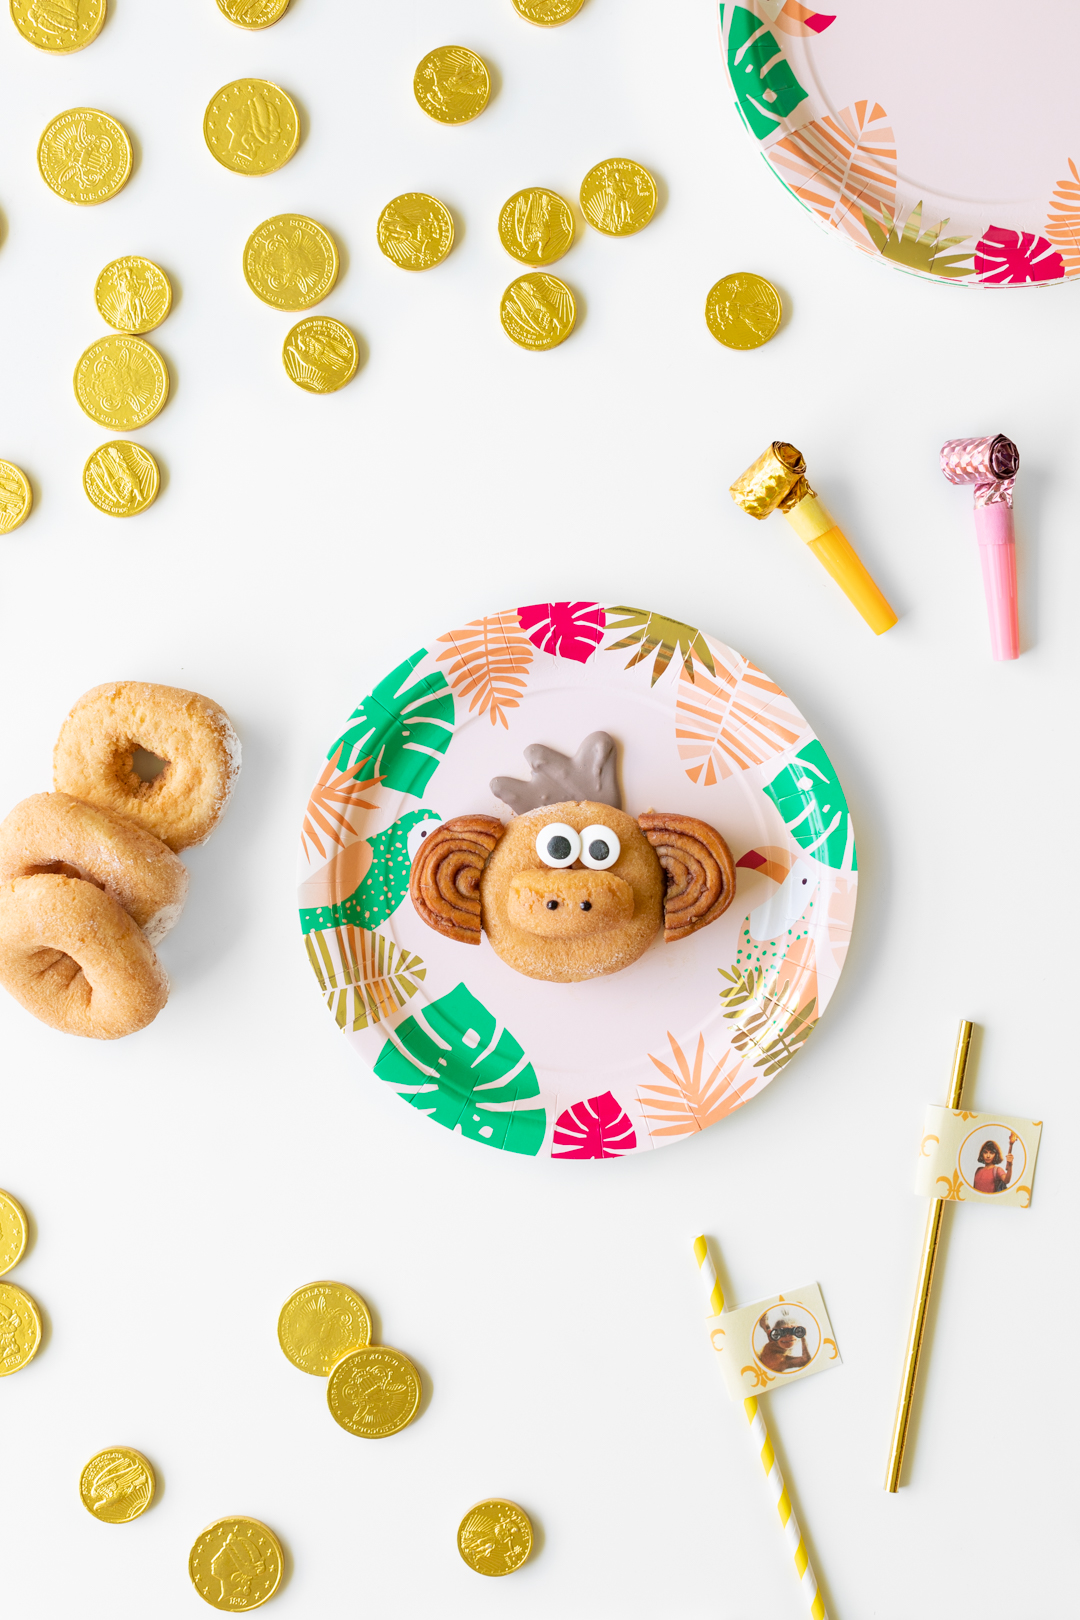 Cute Monkey Donut Creation